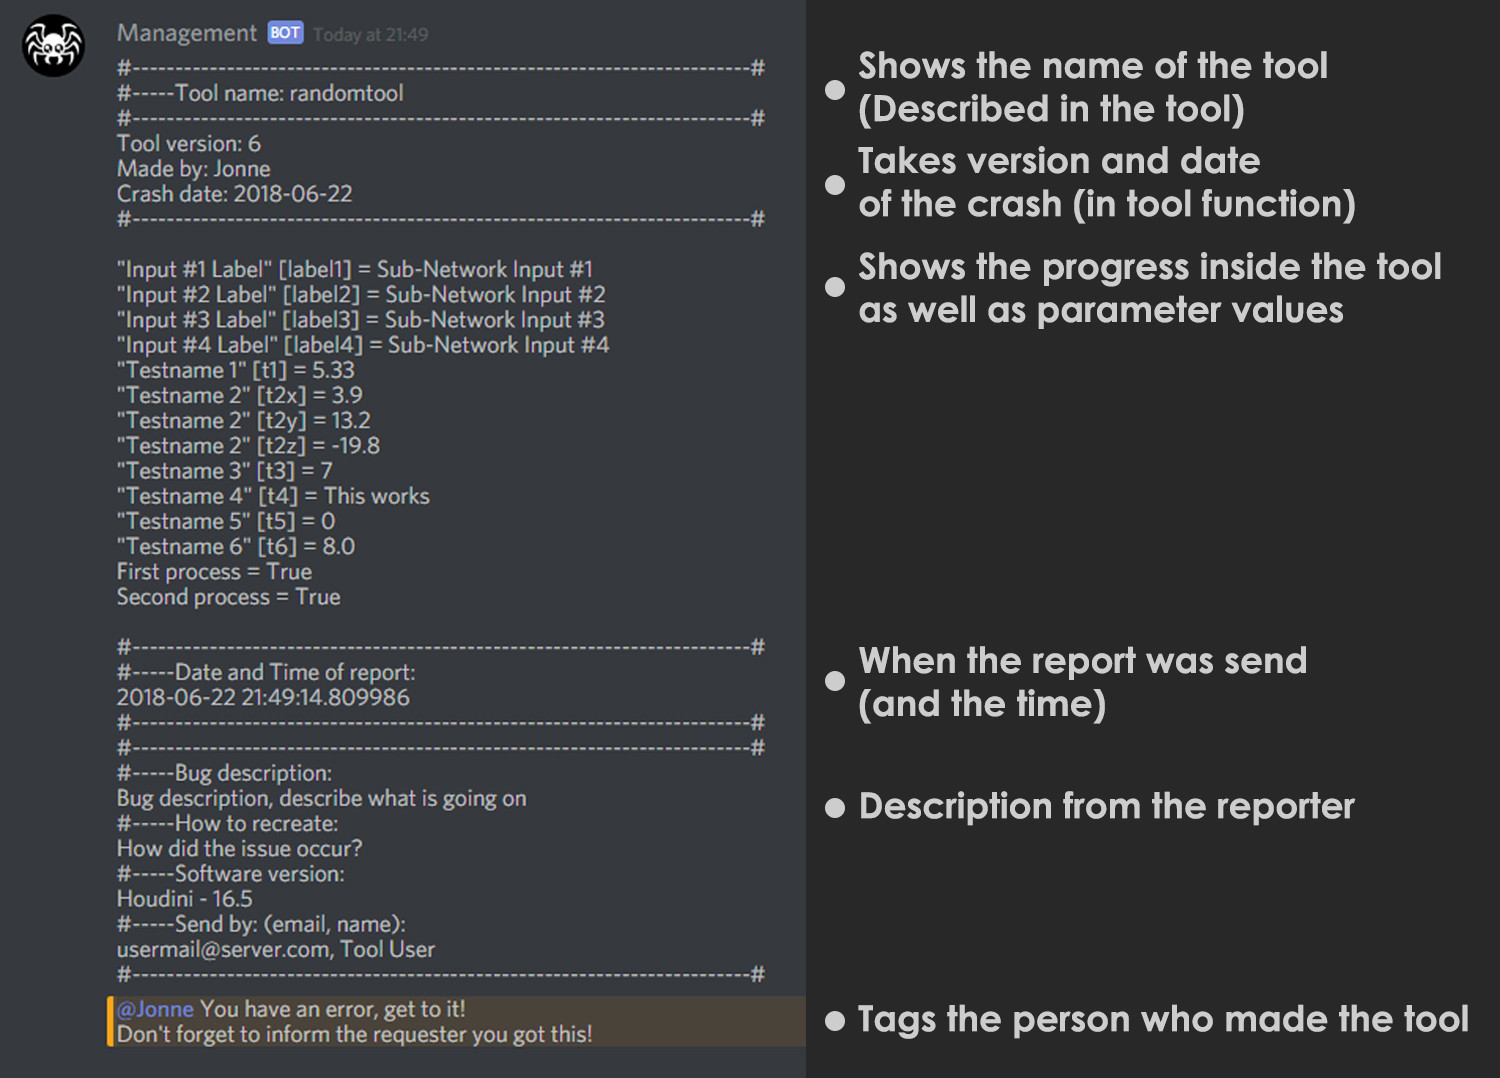 The tool sends a message to our discord tagging the person responsible for the tool and gives all information gathered.